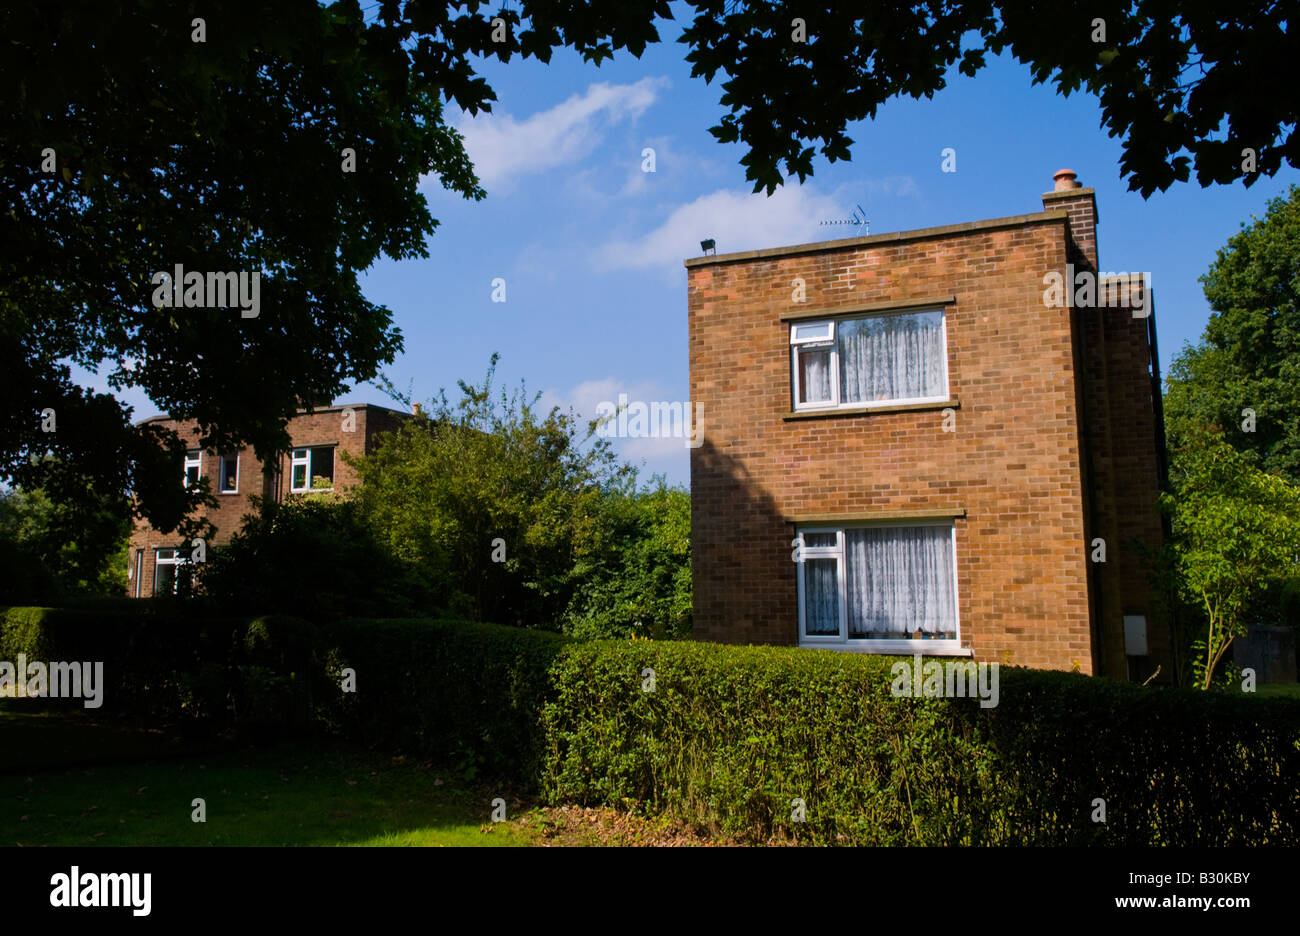 Detached house built in 1940s in rural Rufford Nottinghamshire England UK EU Stock Photo